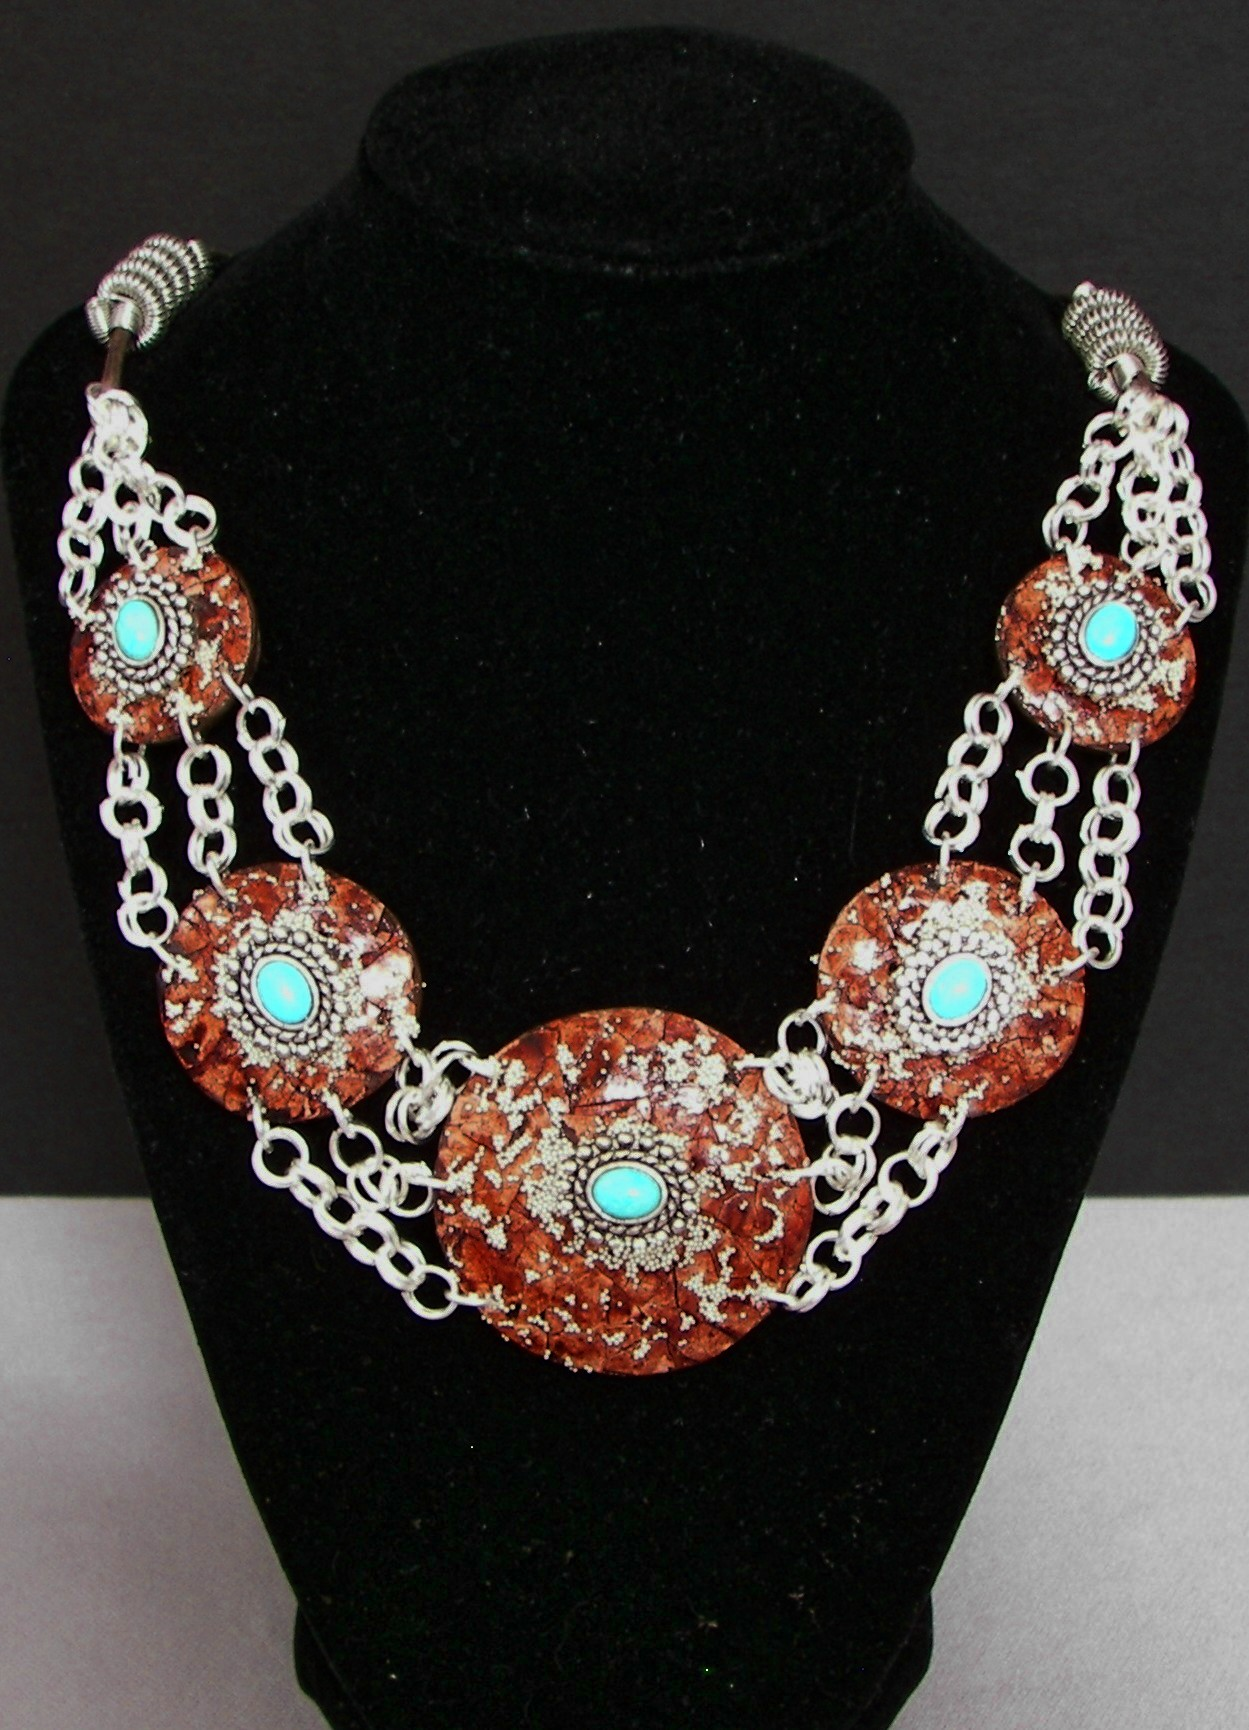 gourd-jewelry-turquoise-silver-5-piece-necklace